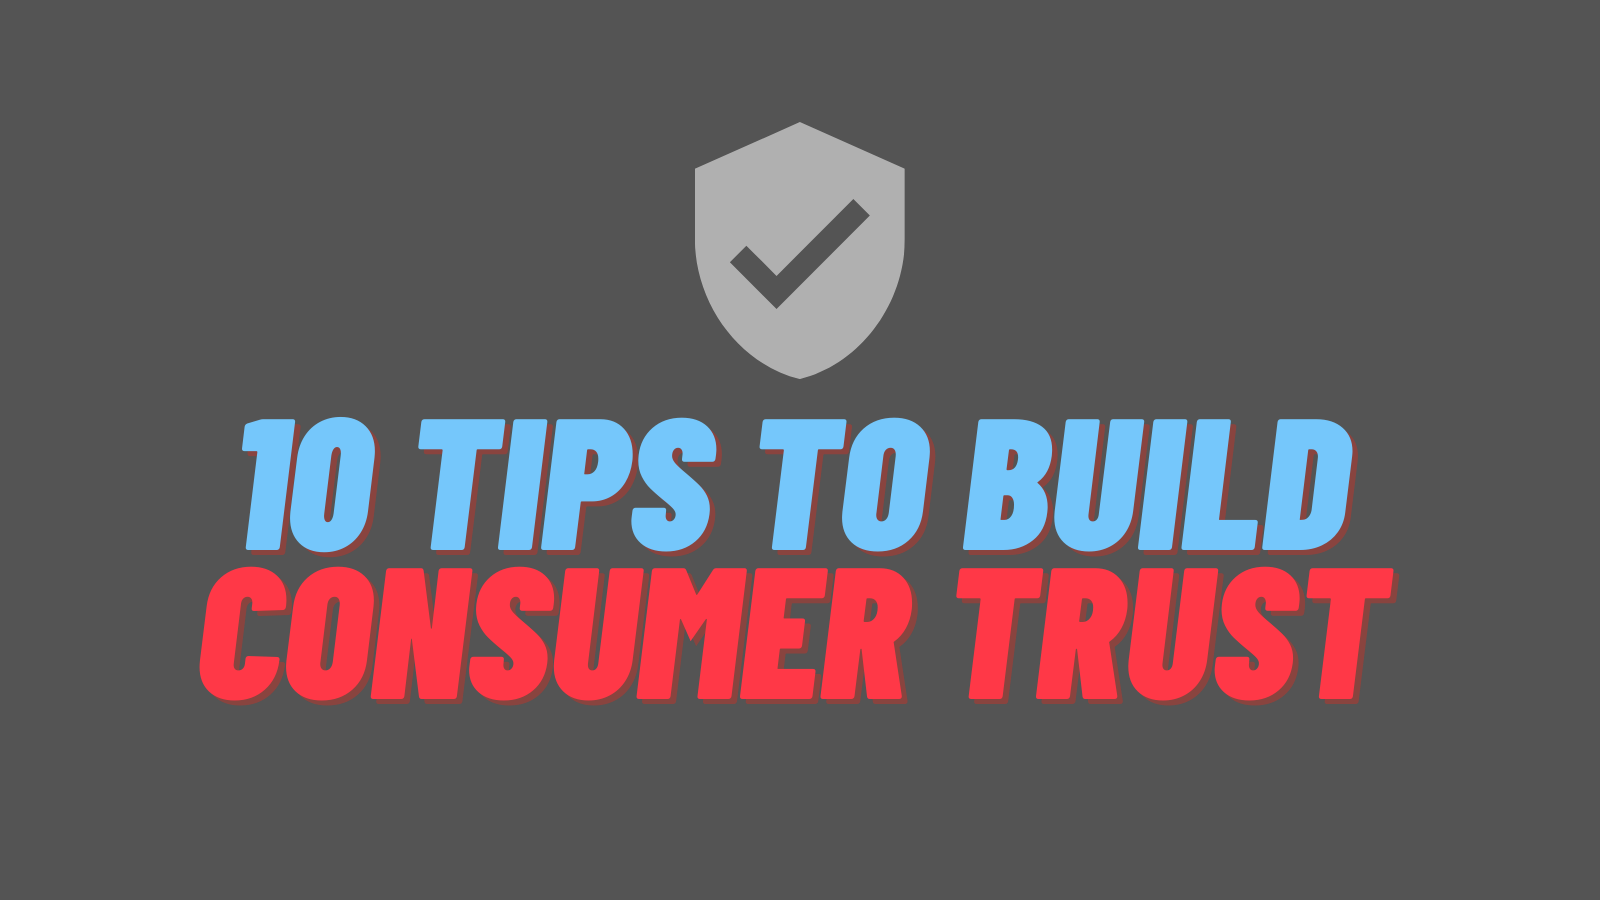 10 tips to build consumer trust